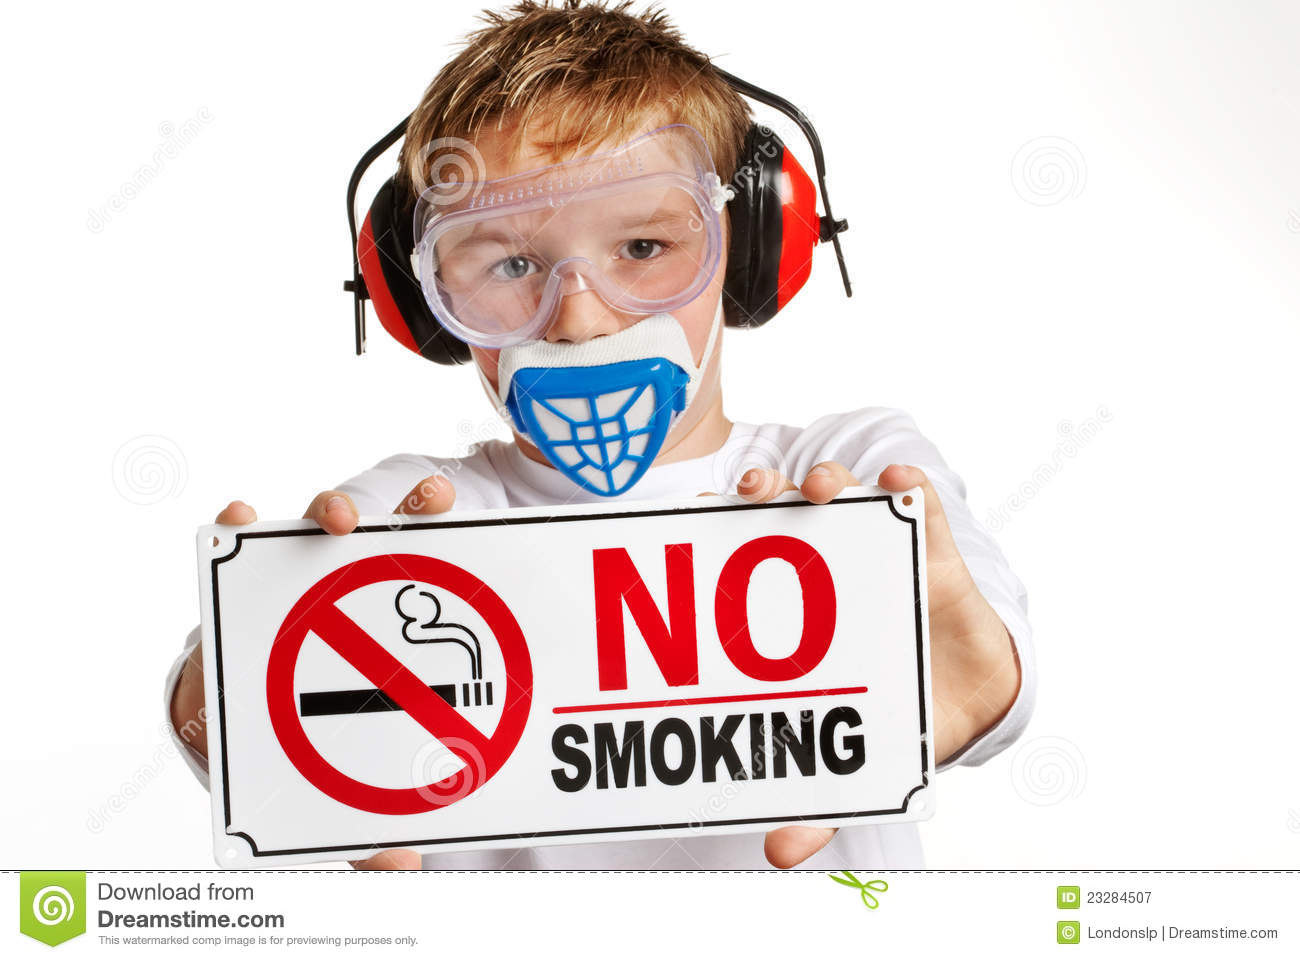 Young boy with no-smoking sign.